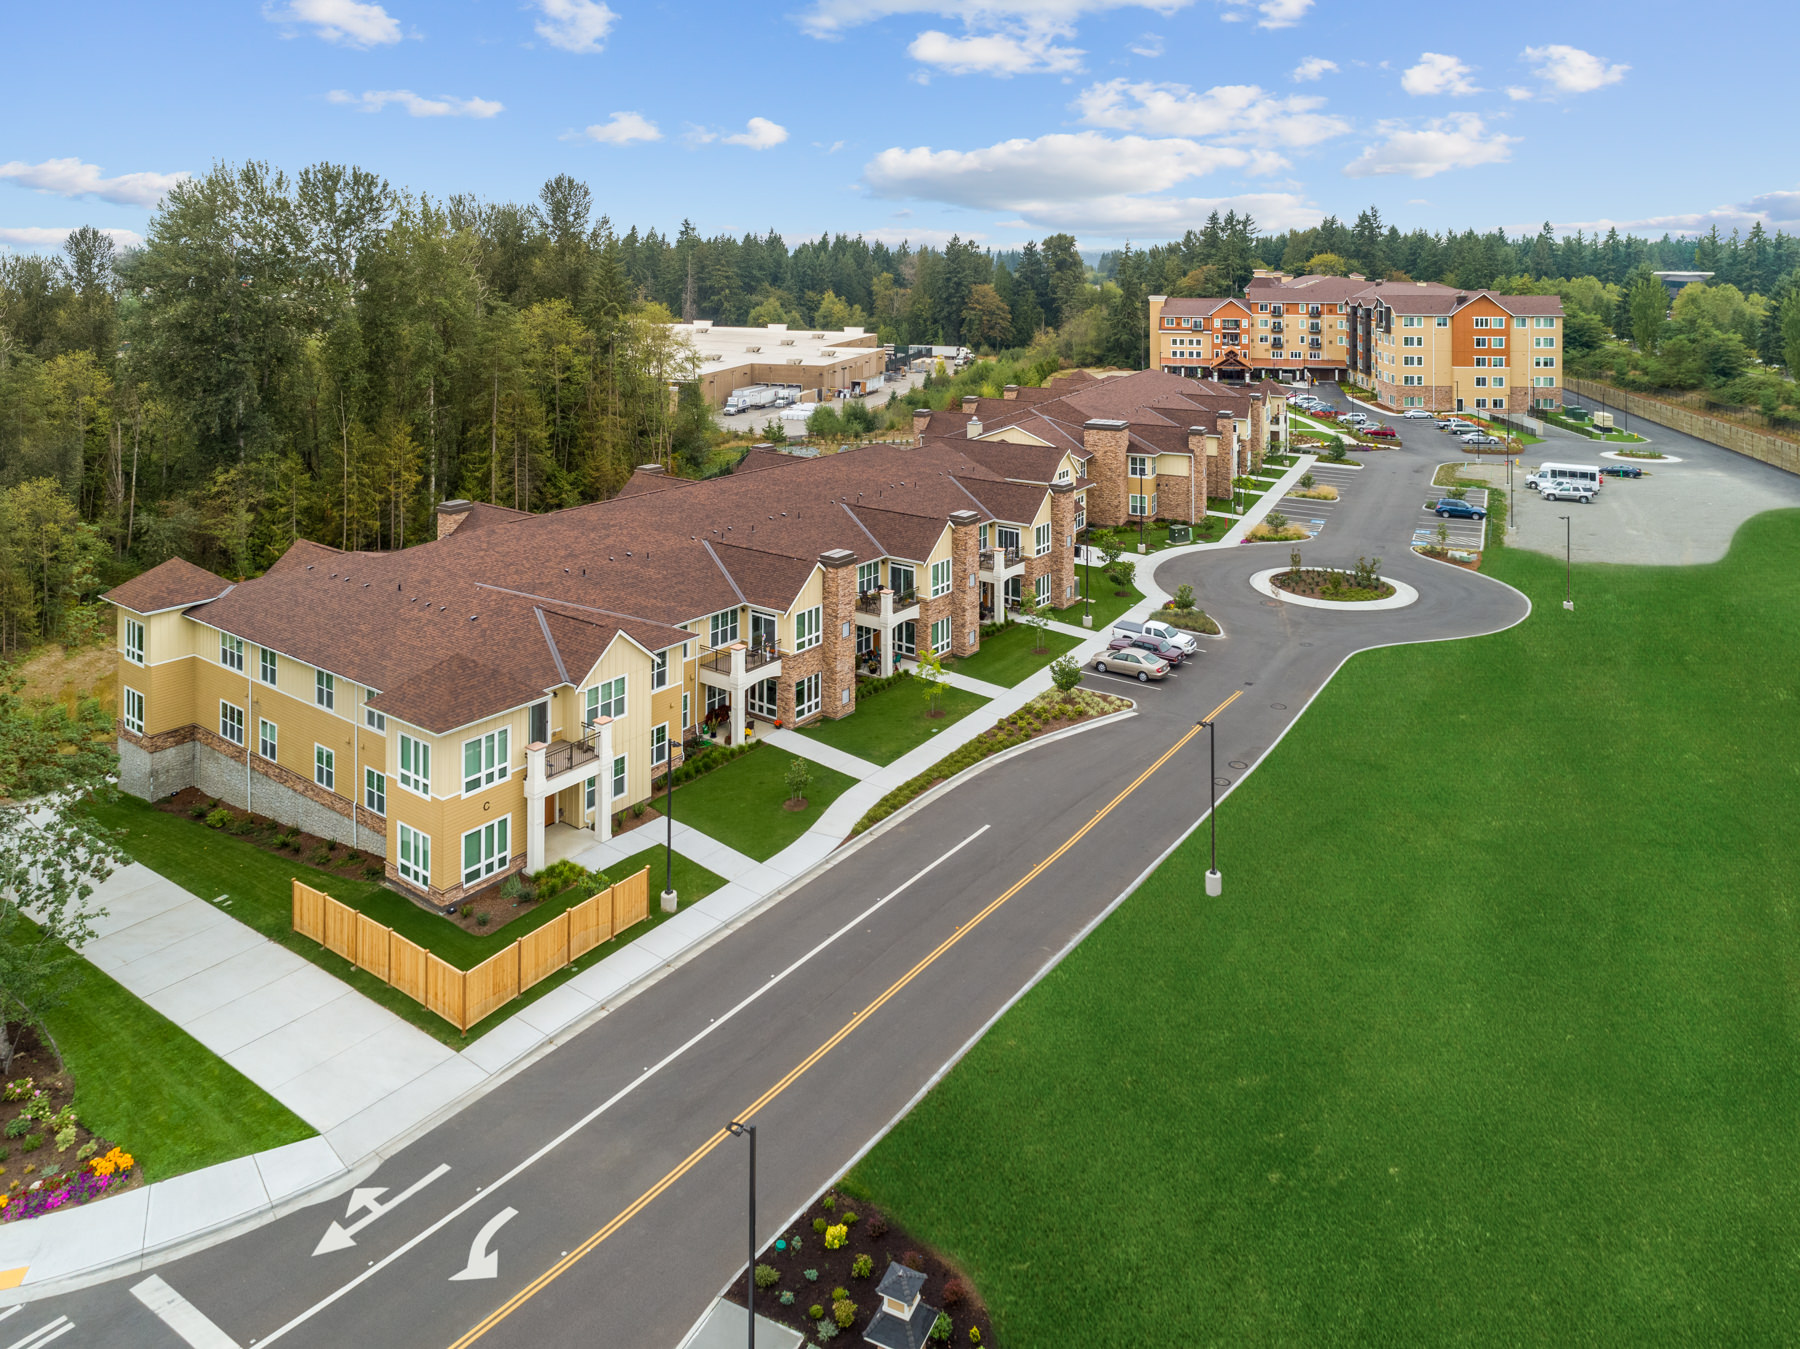 Construction aerial photography in Washington